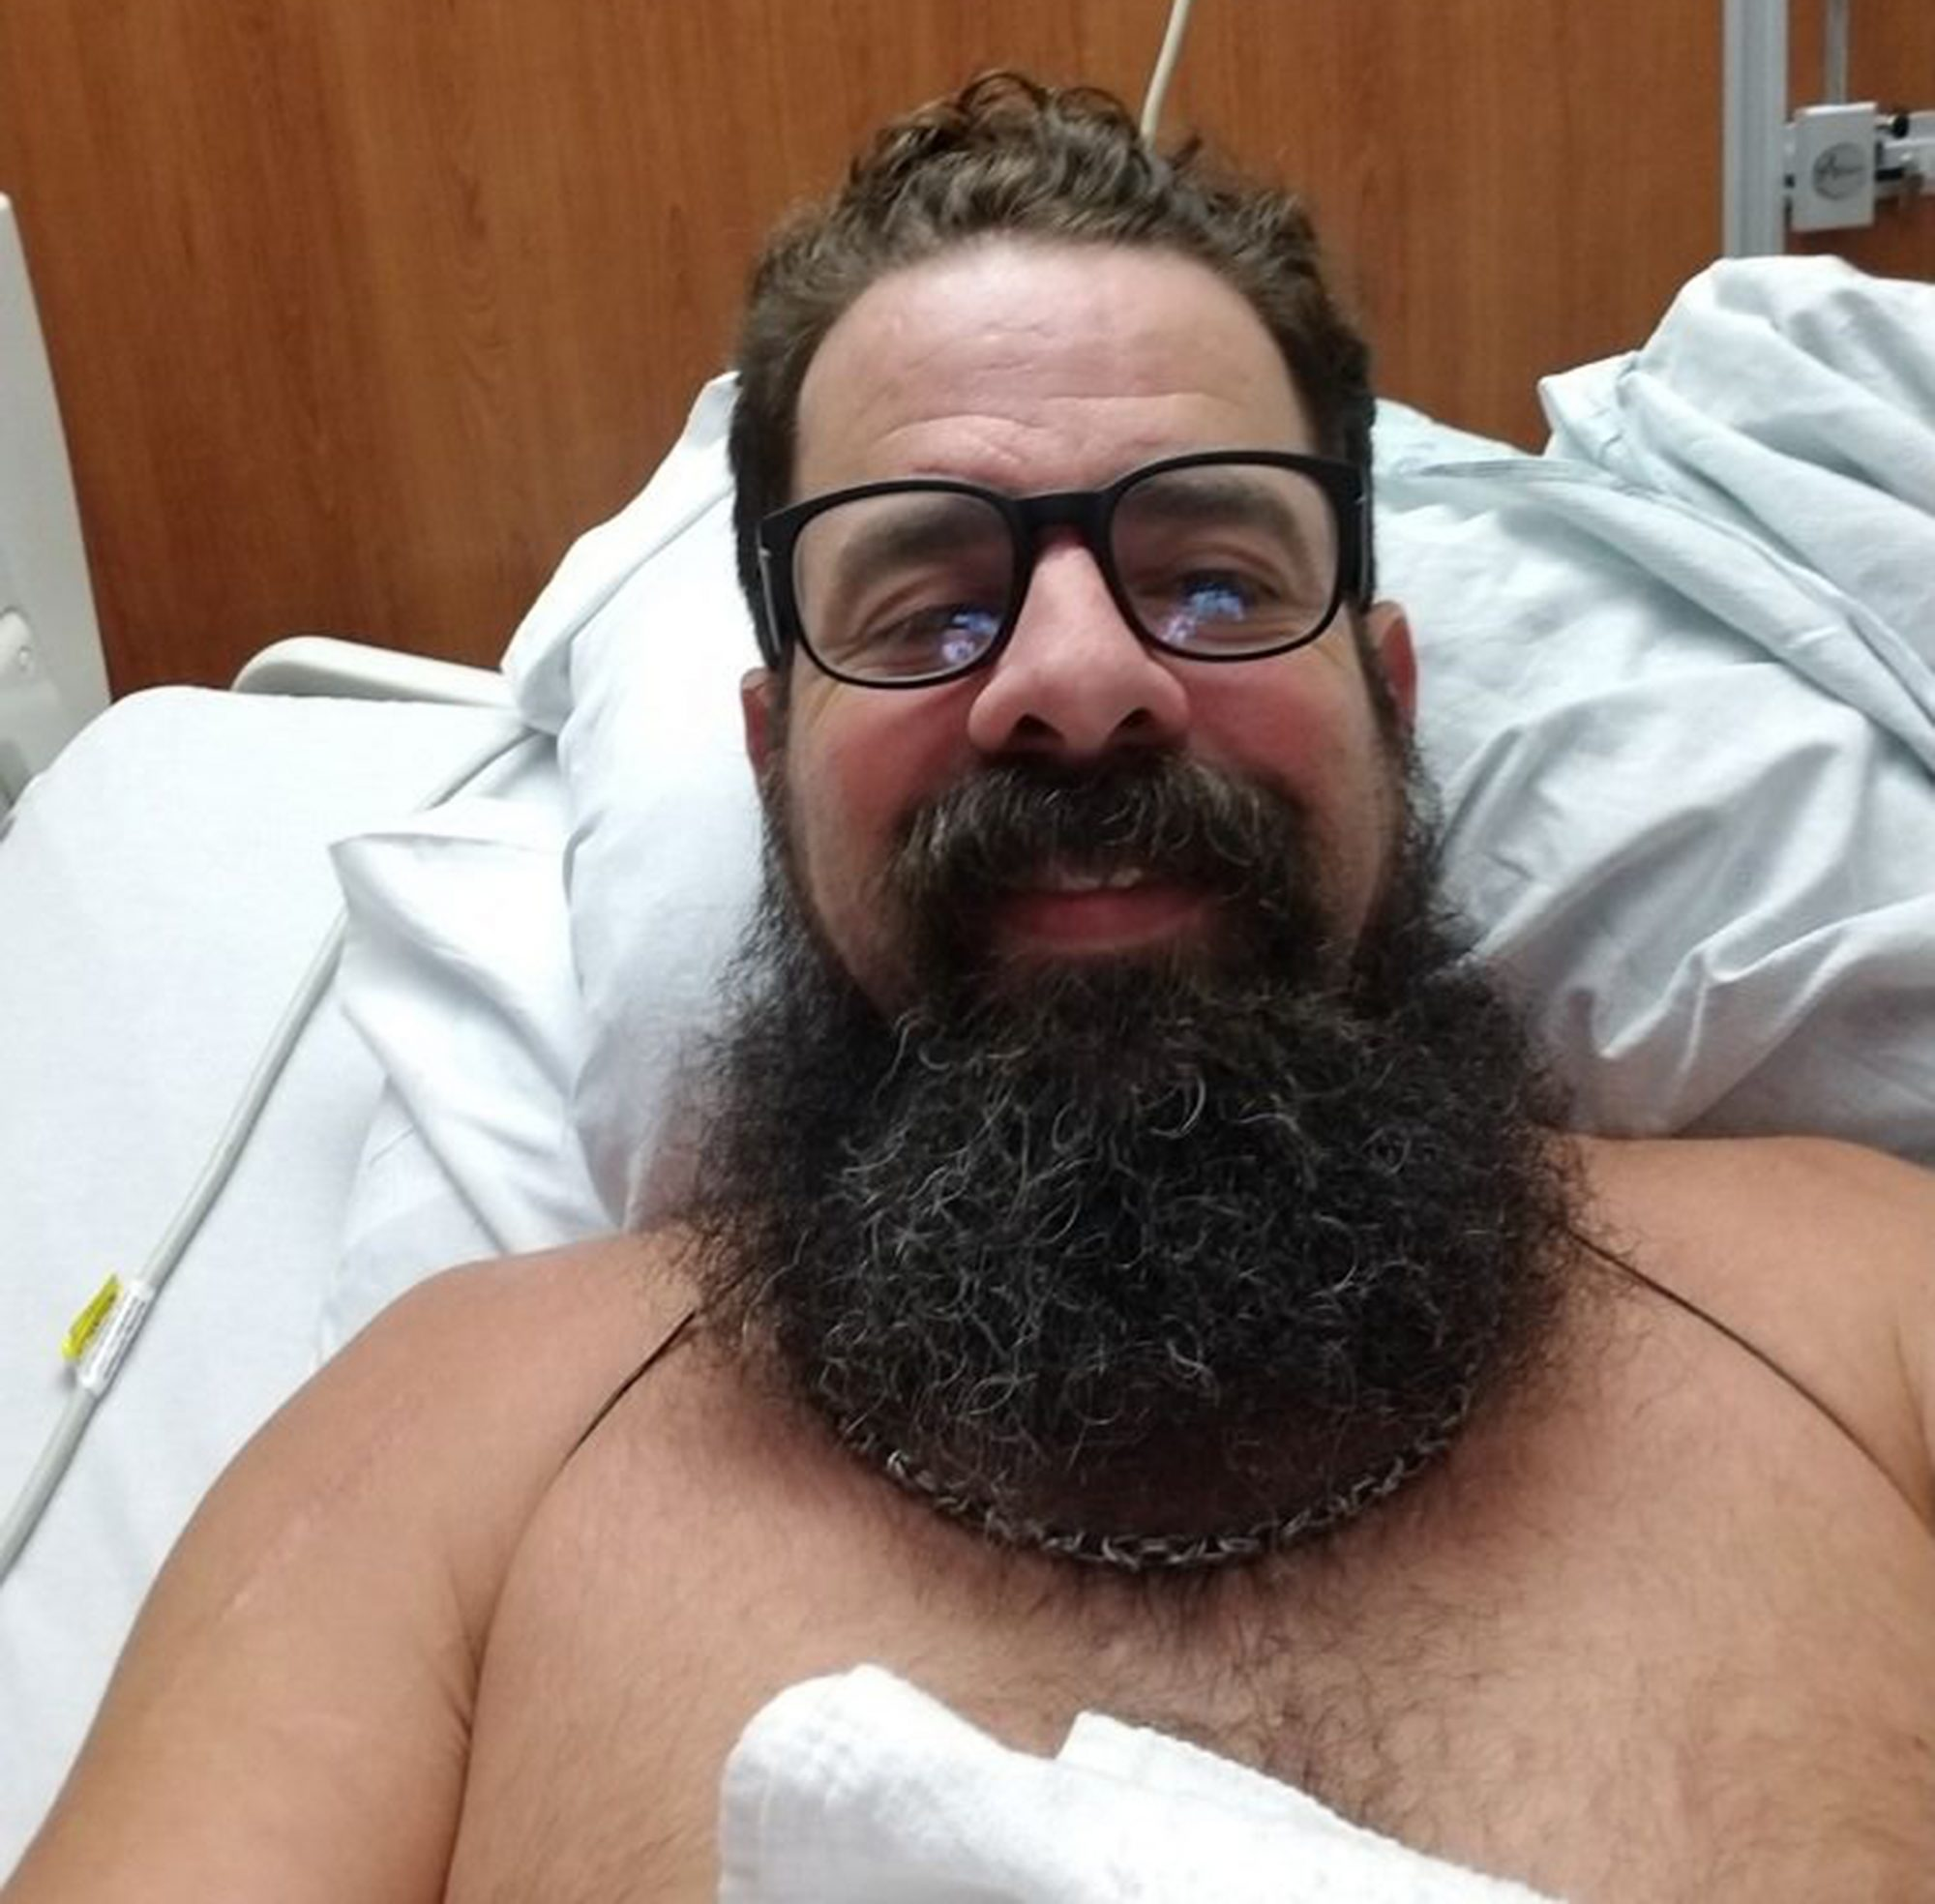 Texas Shark Bite Victim Developed a Flesh-Eating Bacterial Infection: 'I Could Hardly Walk'